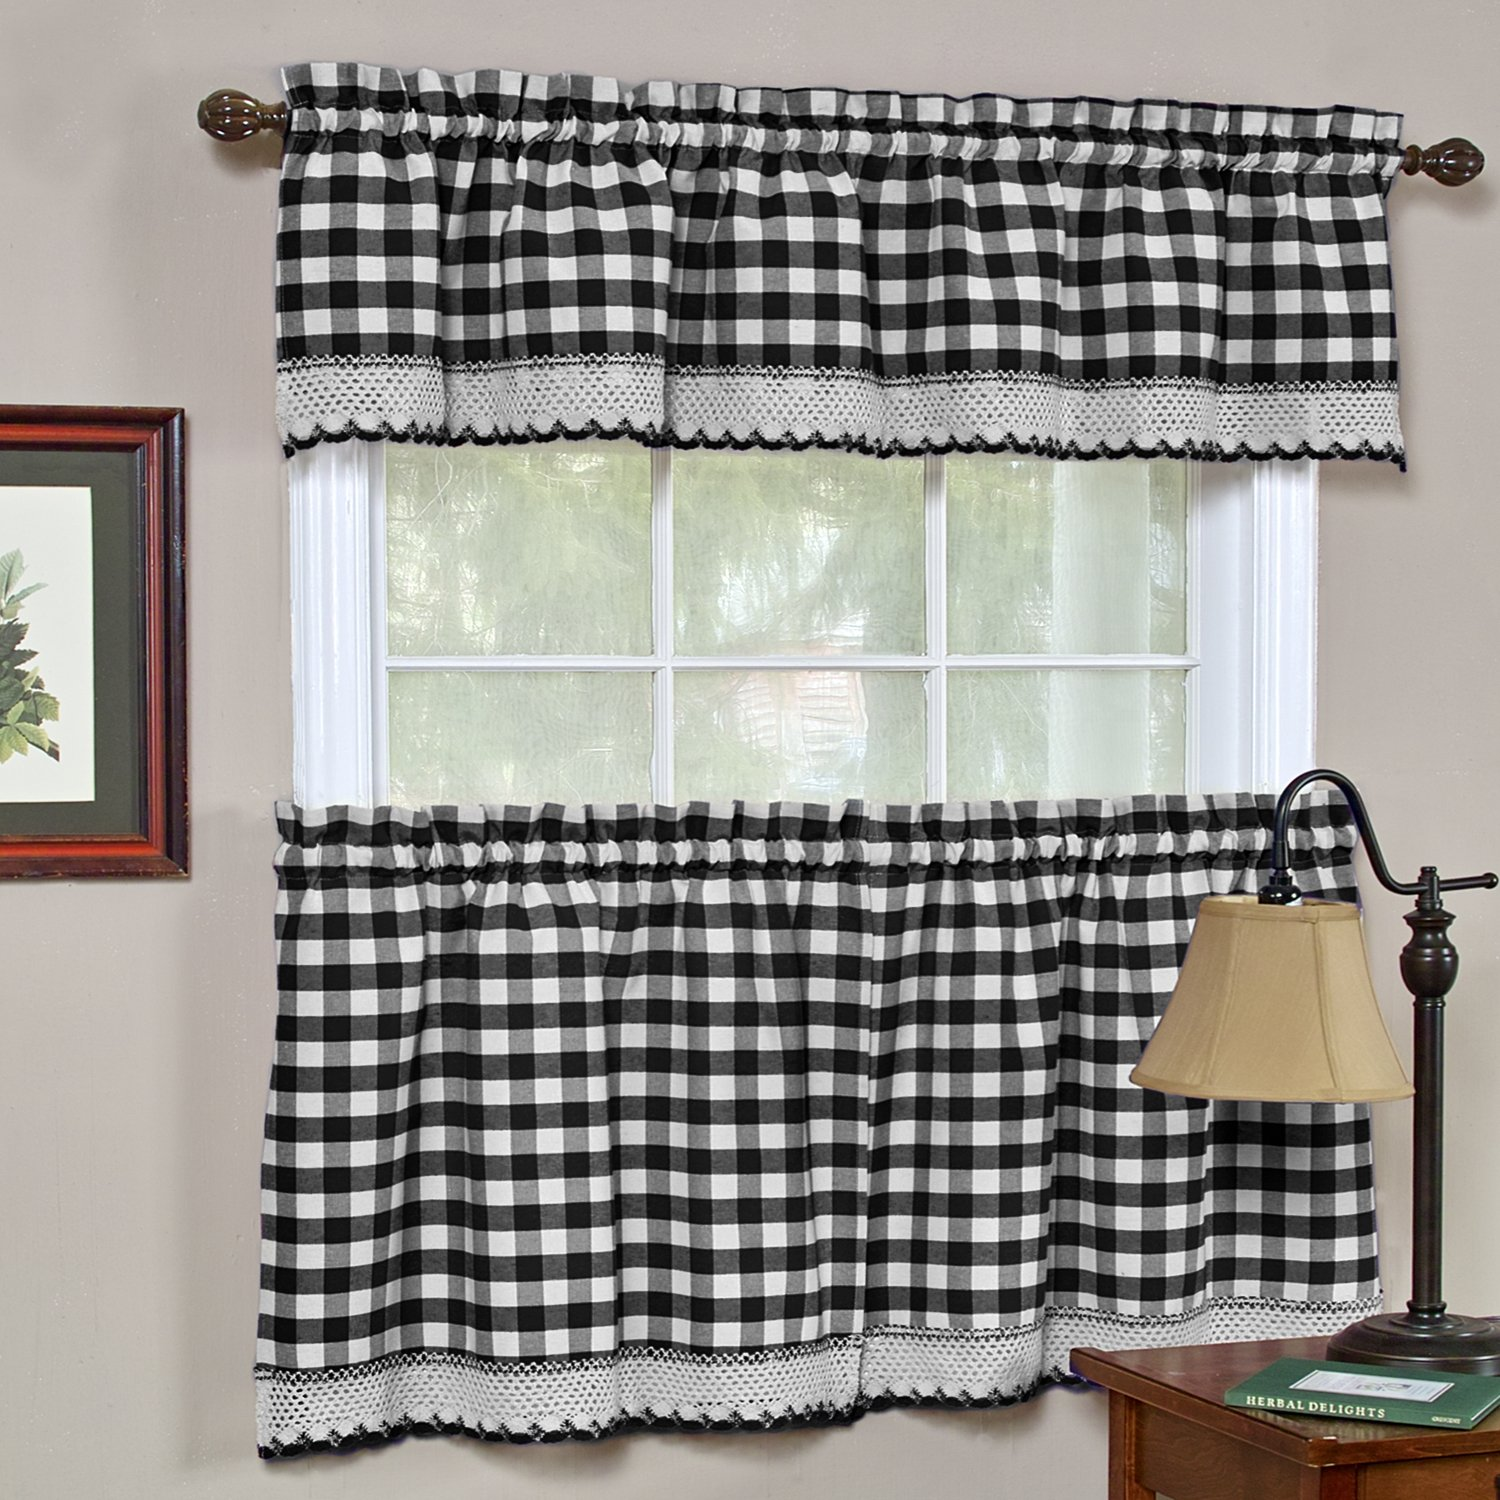 Black and white checked curtains - Amazon Com Achim Home Furnishings Buffalo Check Kitchen Curtain Tier Black White 58 X 36 Inch Set Of 2 Home Kitchen